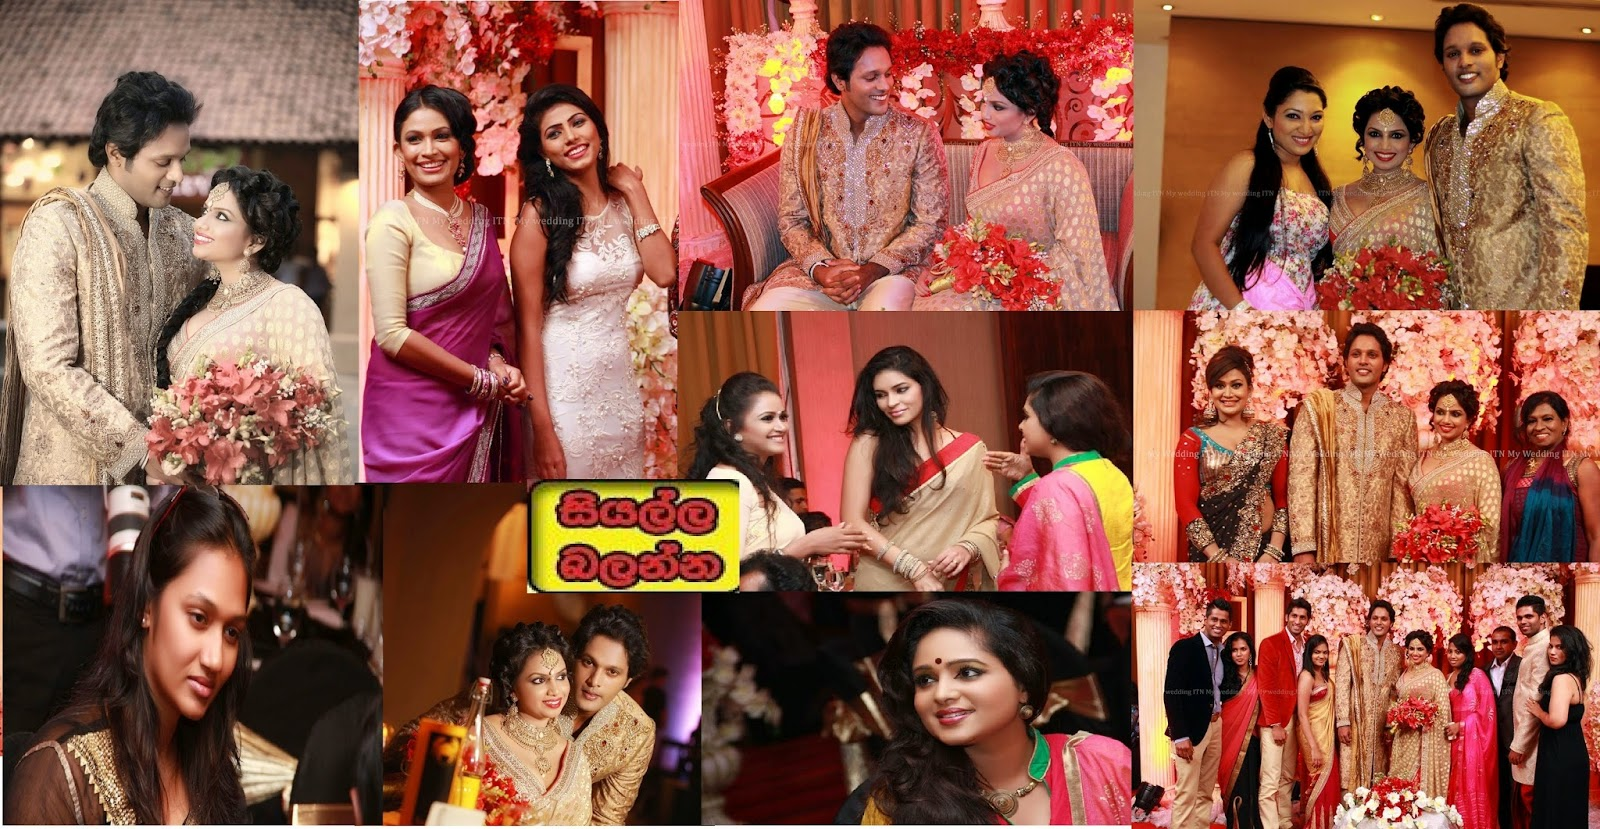 http://picture.gossiplankahotnews.com/2014/08/roshan-ranawana-homecoming-photos.html